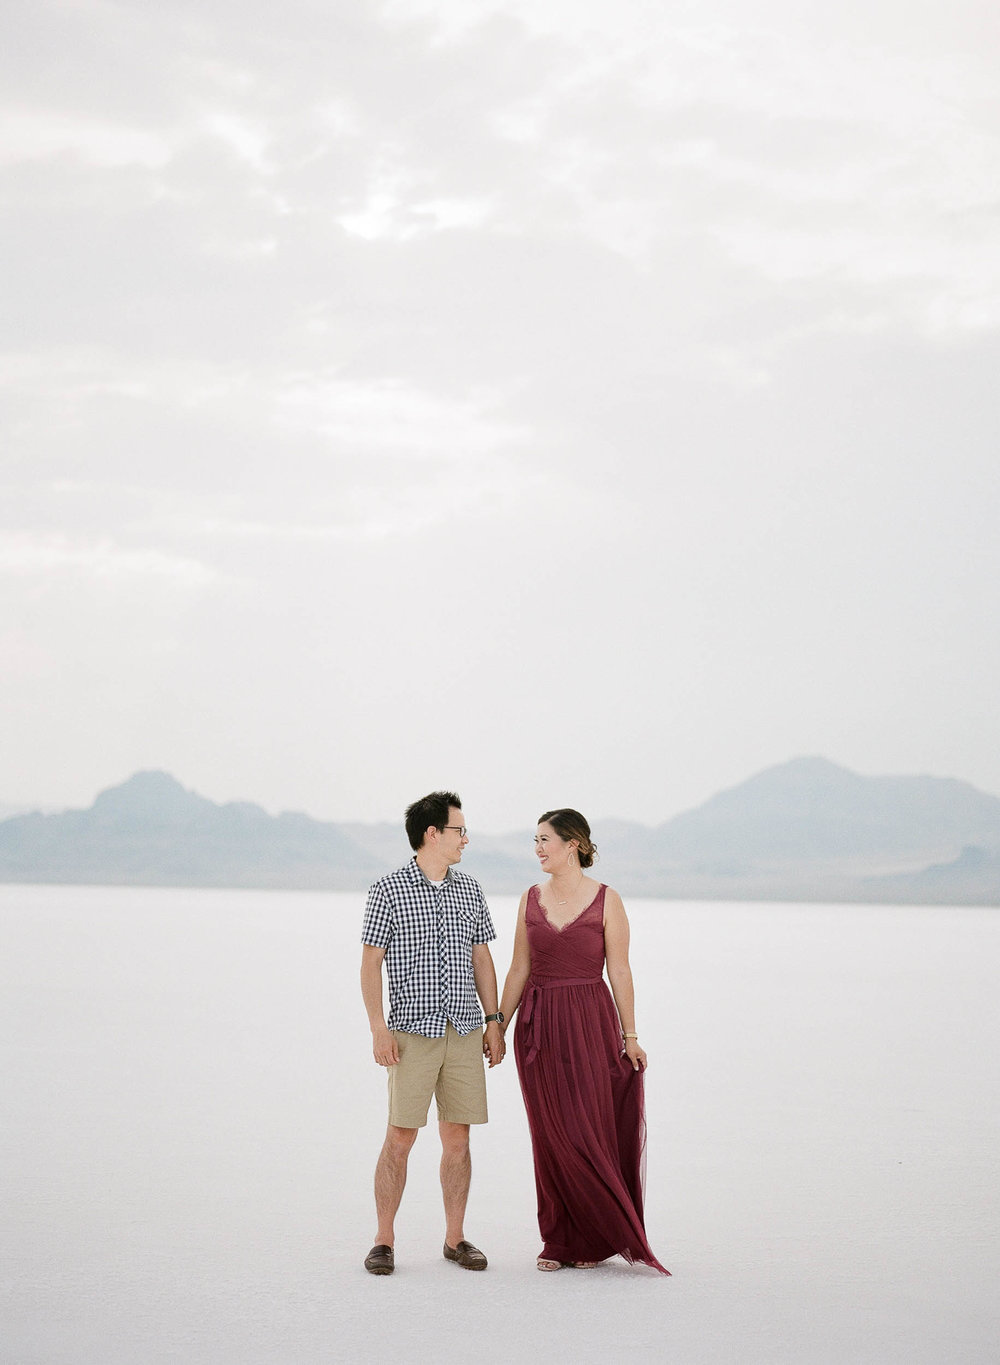 070918_Sandy A La Mode_Family_Utah Salt Flats_Buena Lane Photography_F400_91.jpg